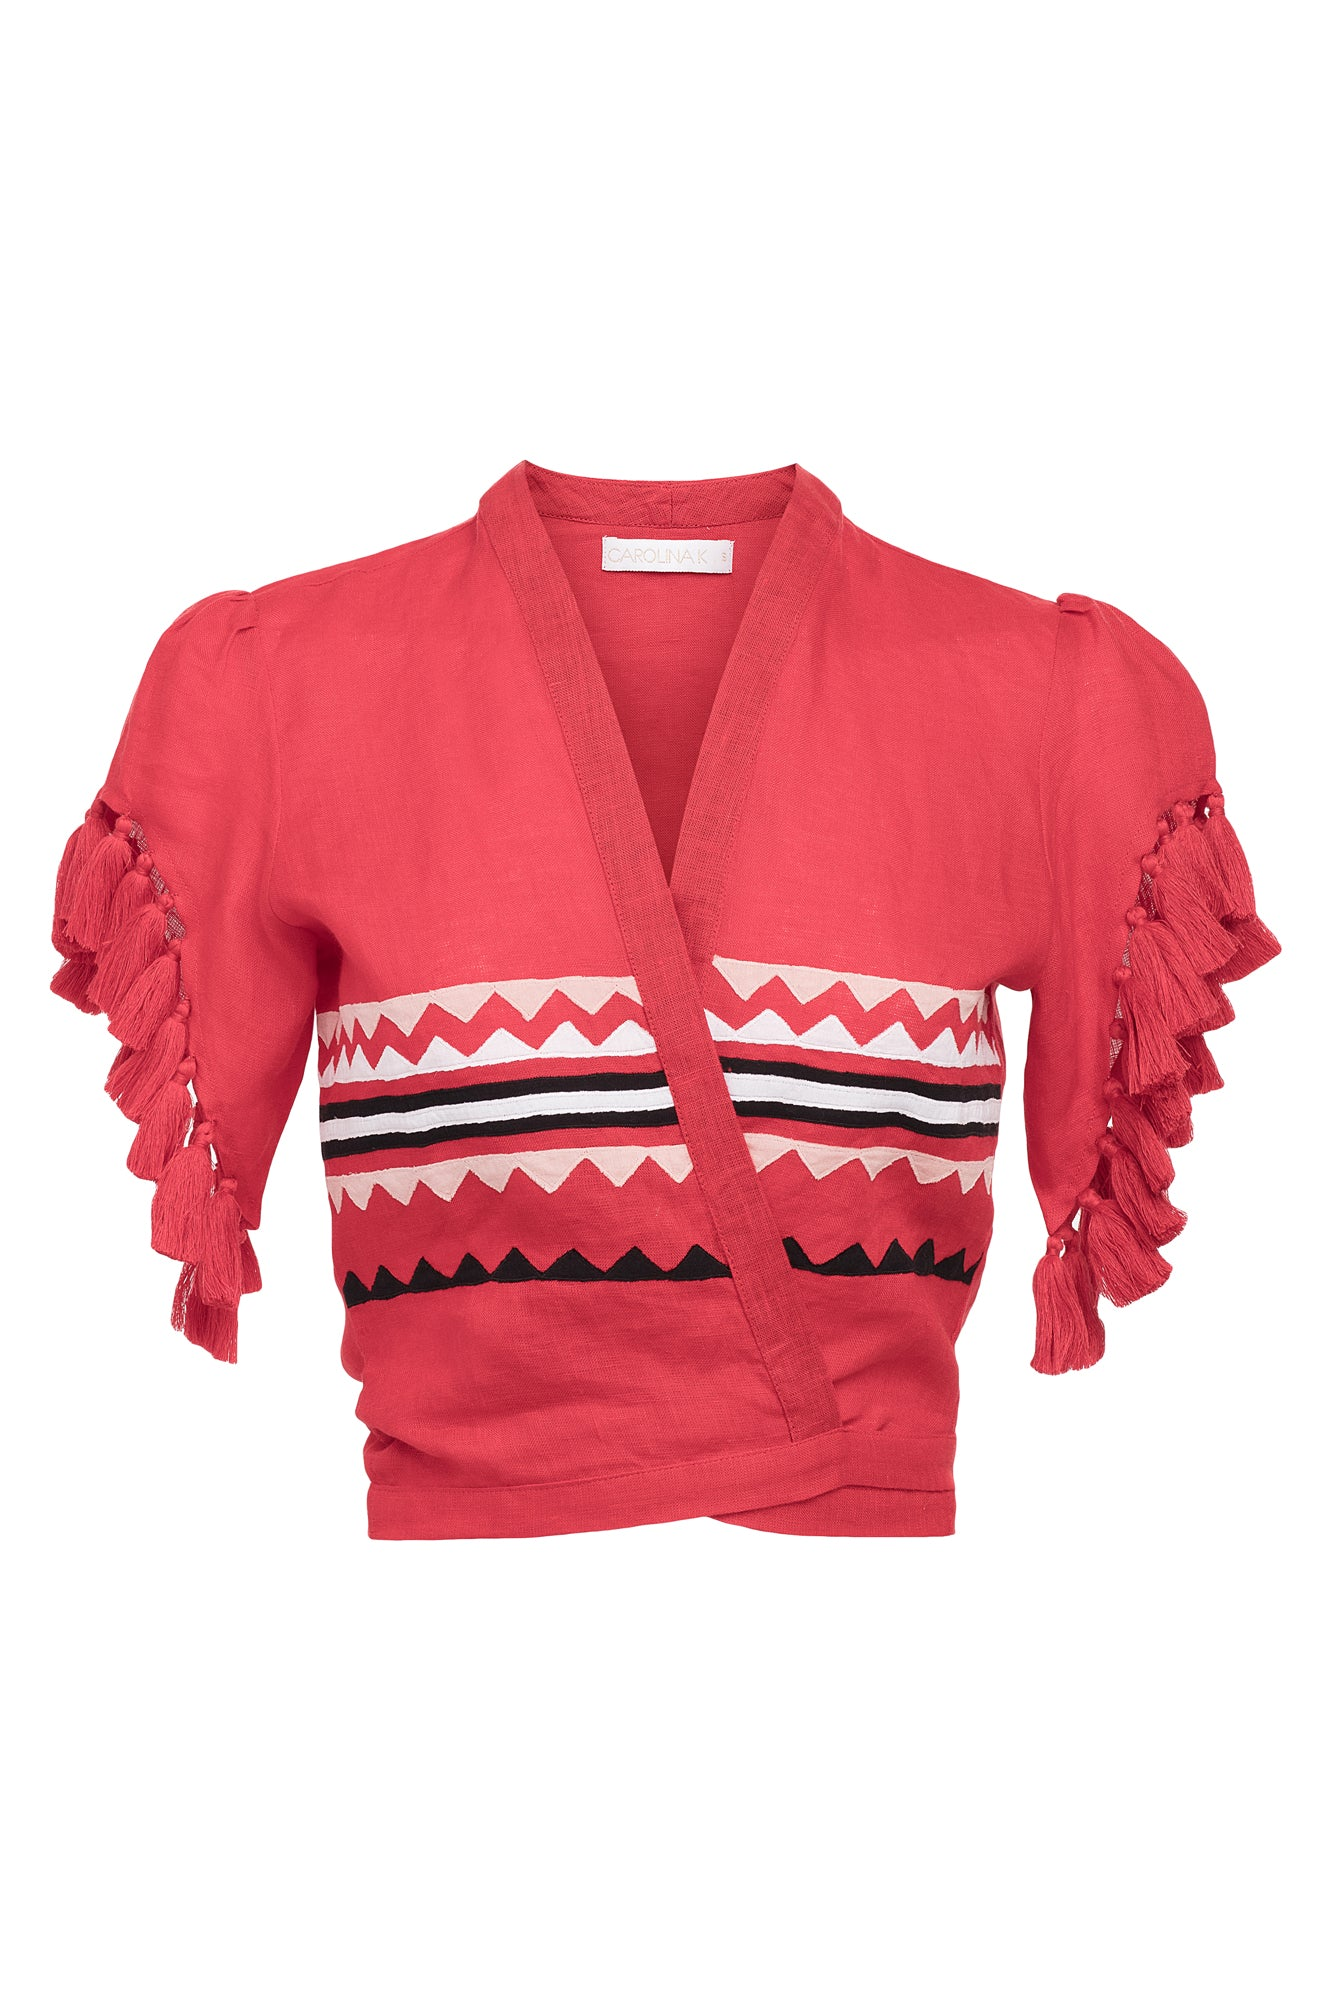 Carolina K Dani Top Red Triangles